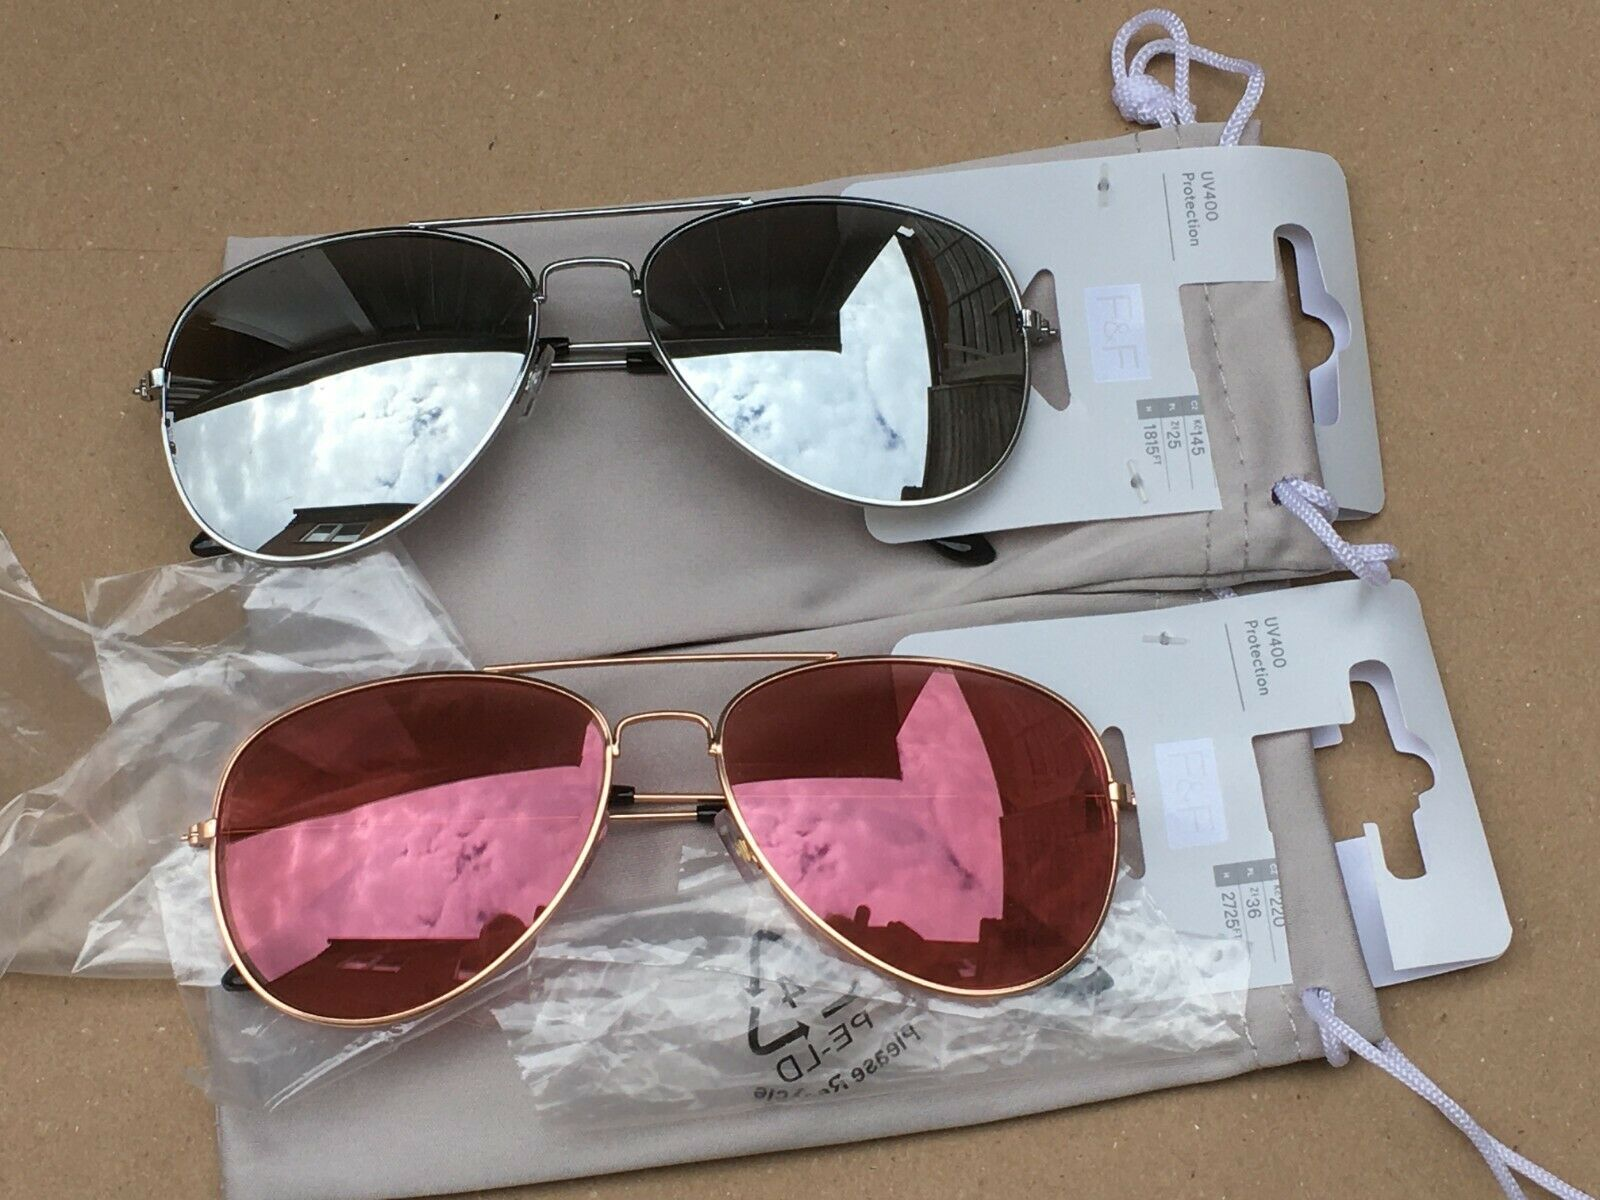 2 X F&F UNISEX Rose Gold Sunglasses UV400 Protection With Microfibre Cloth Pouch